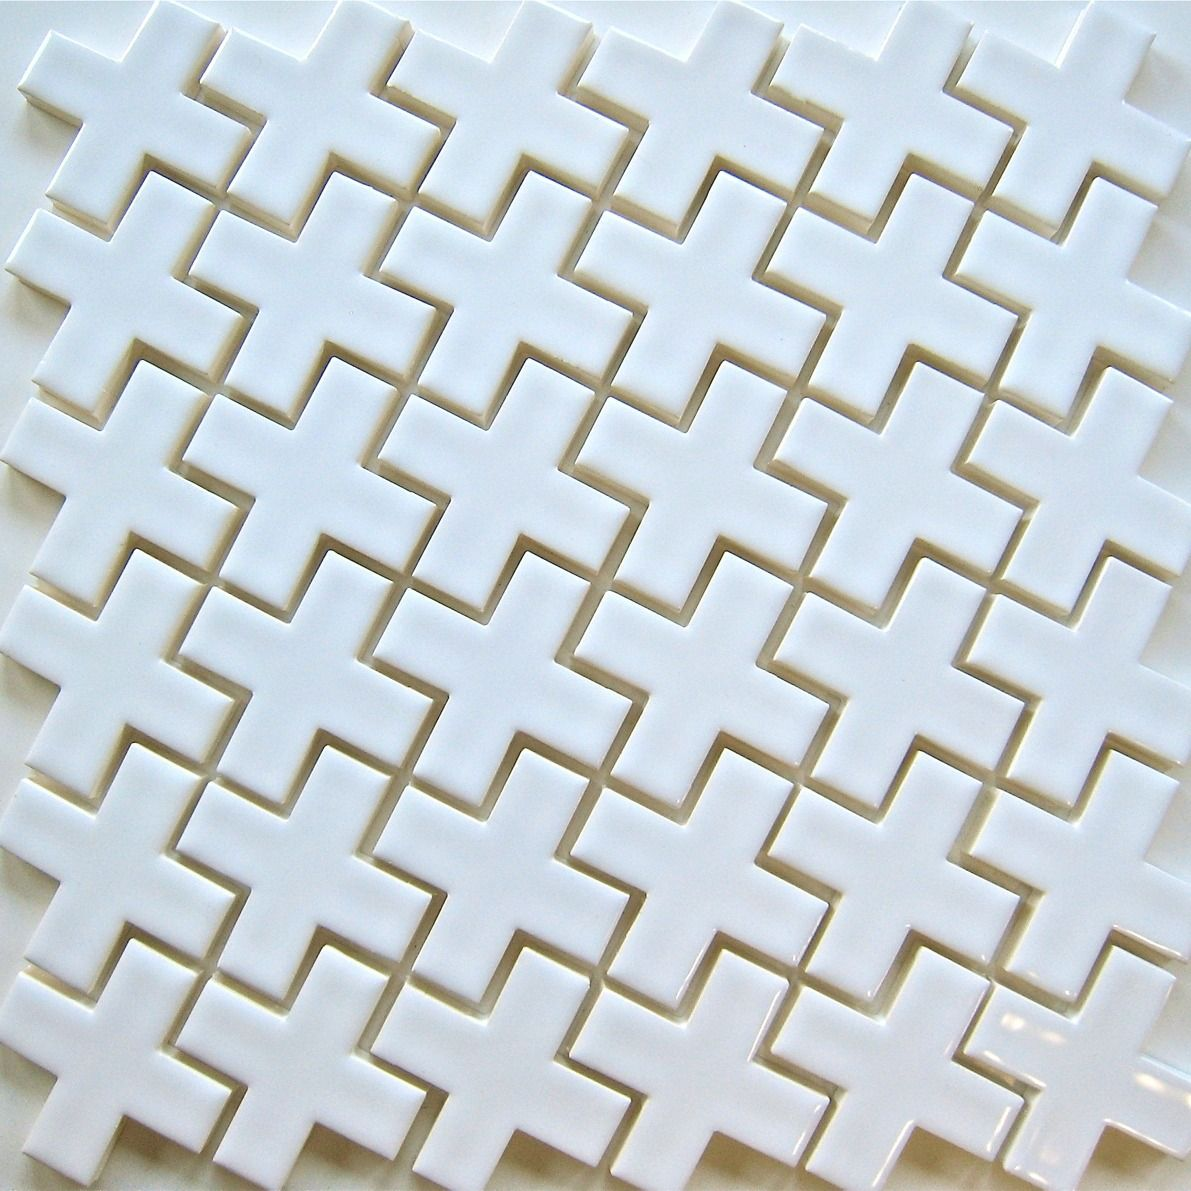 Mosaic tile Plus Mosaic white ceramic tile for kitchen backsplash ...